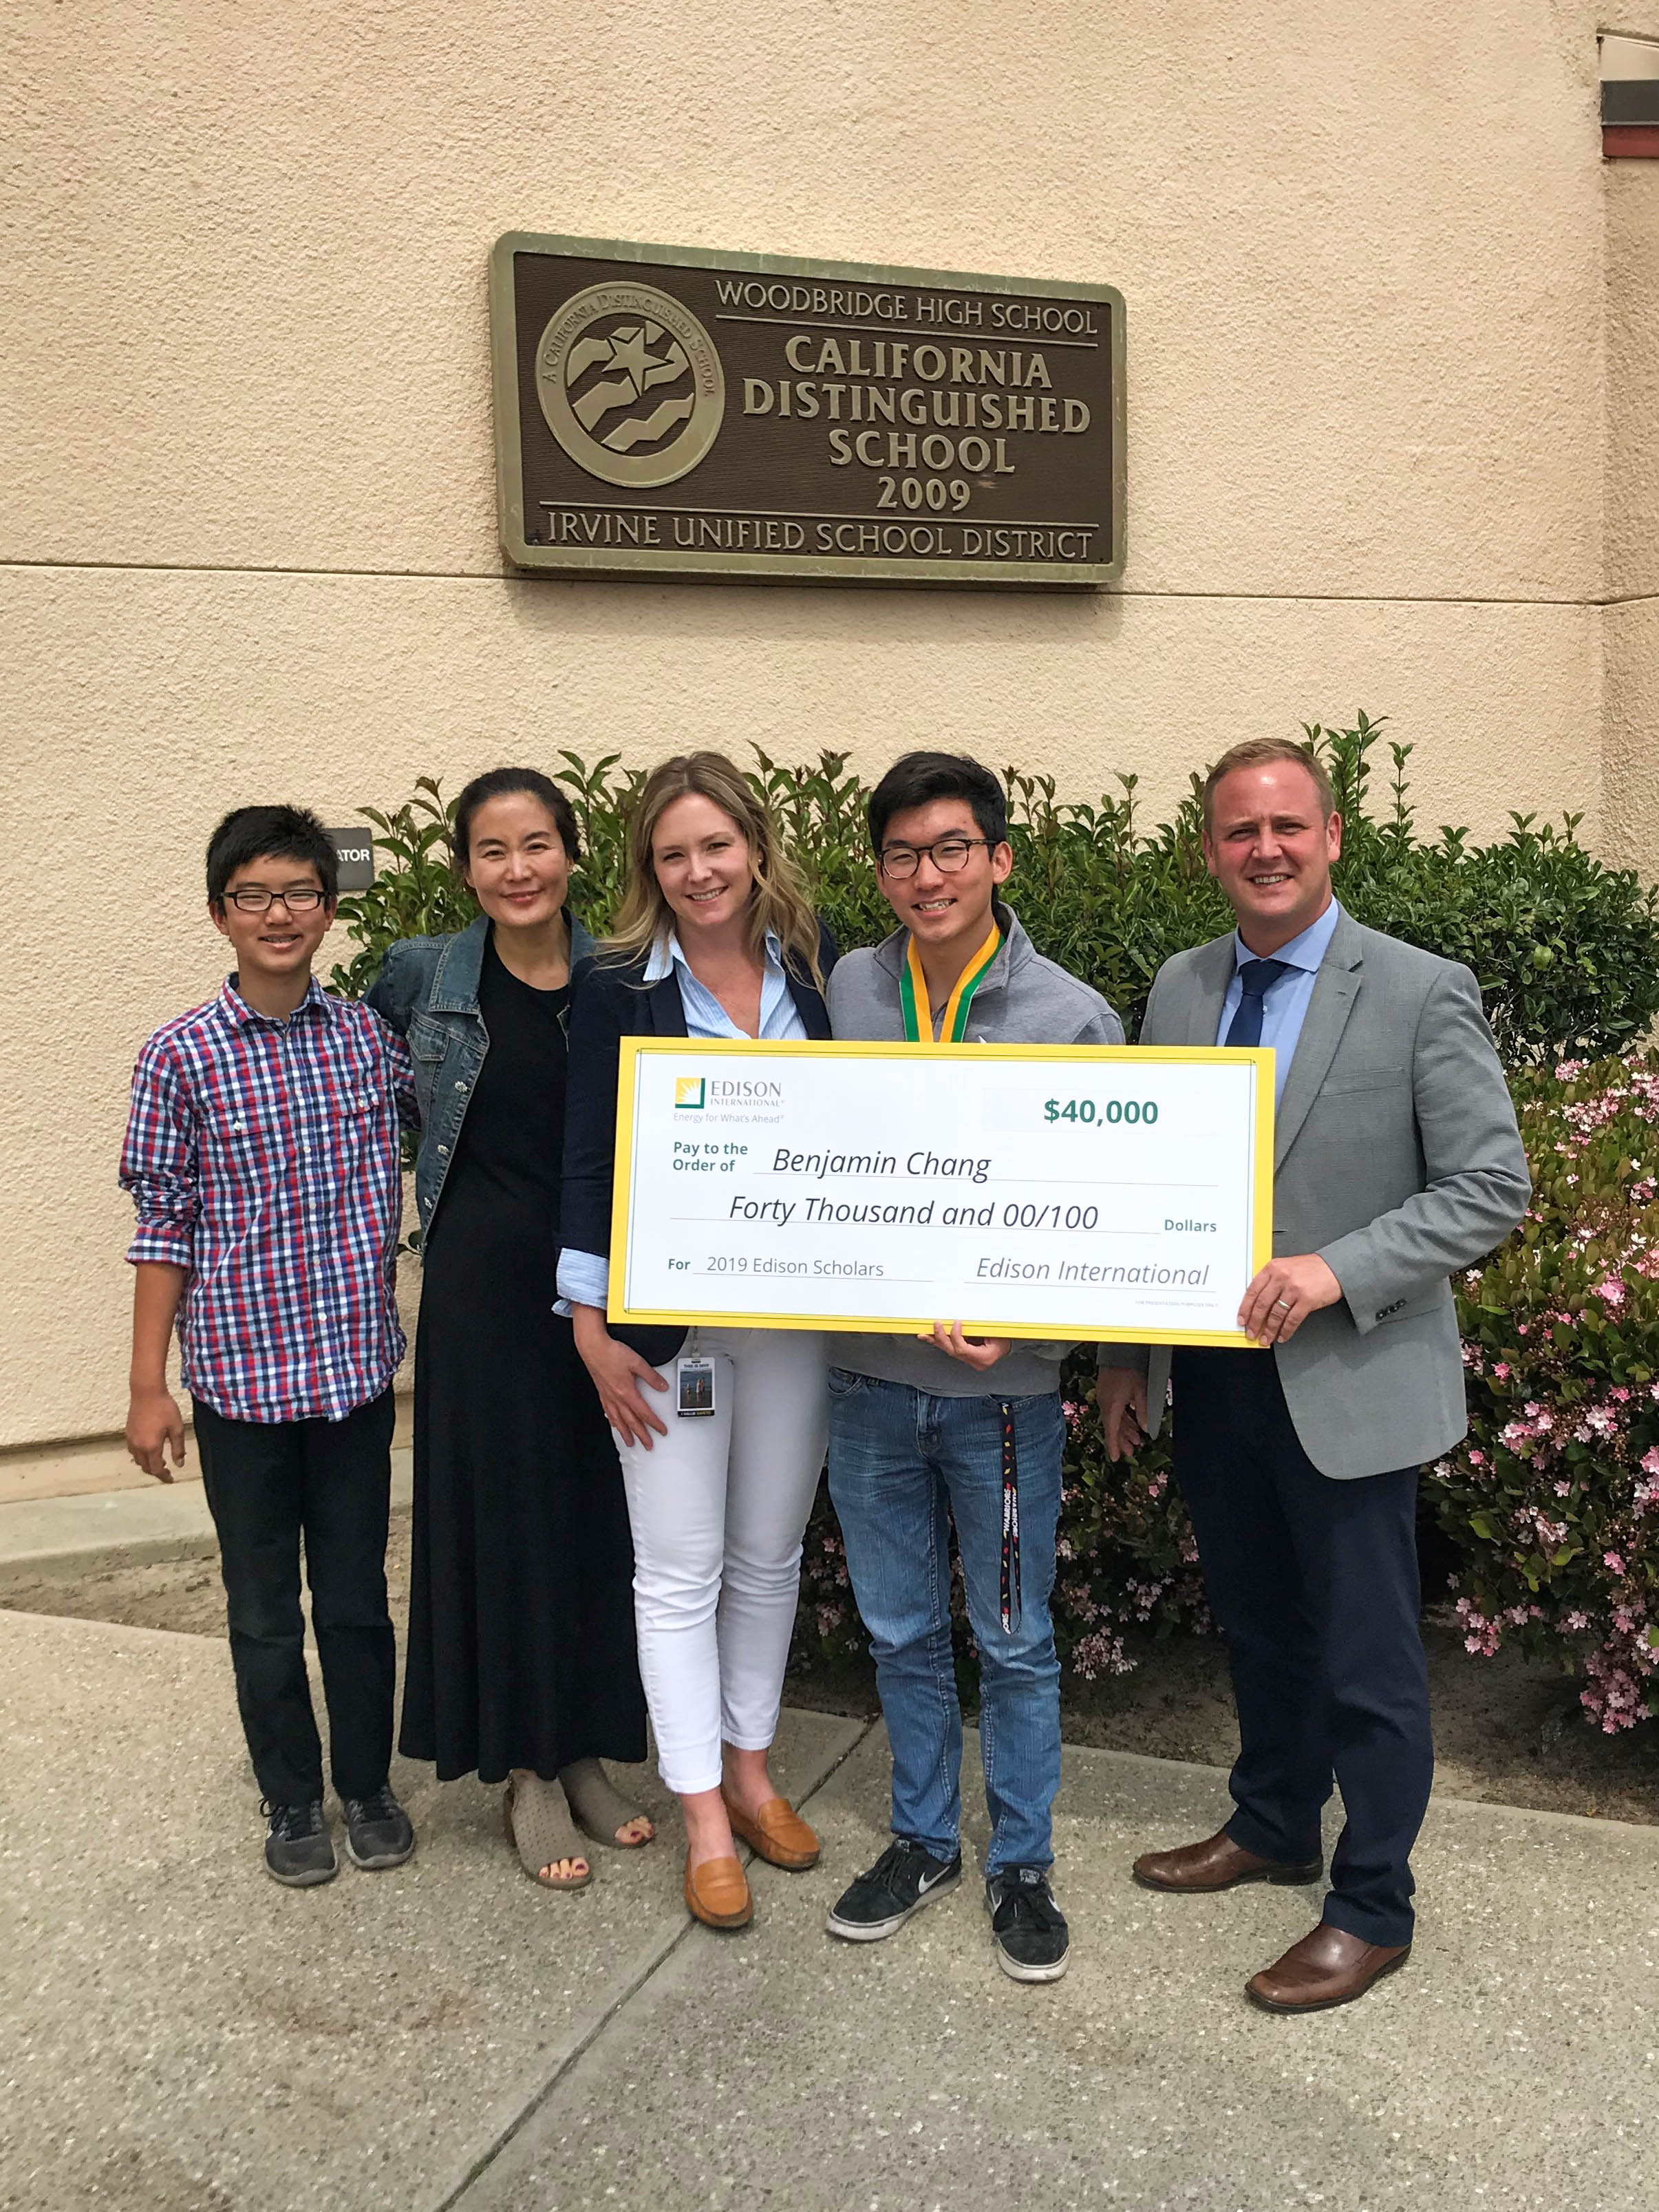 2019 Edison Scholar Benjamin Chang at Woodbridge High School